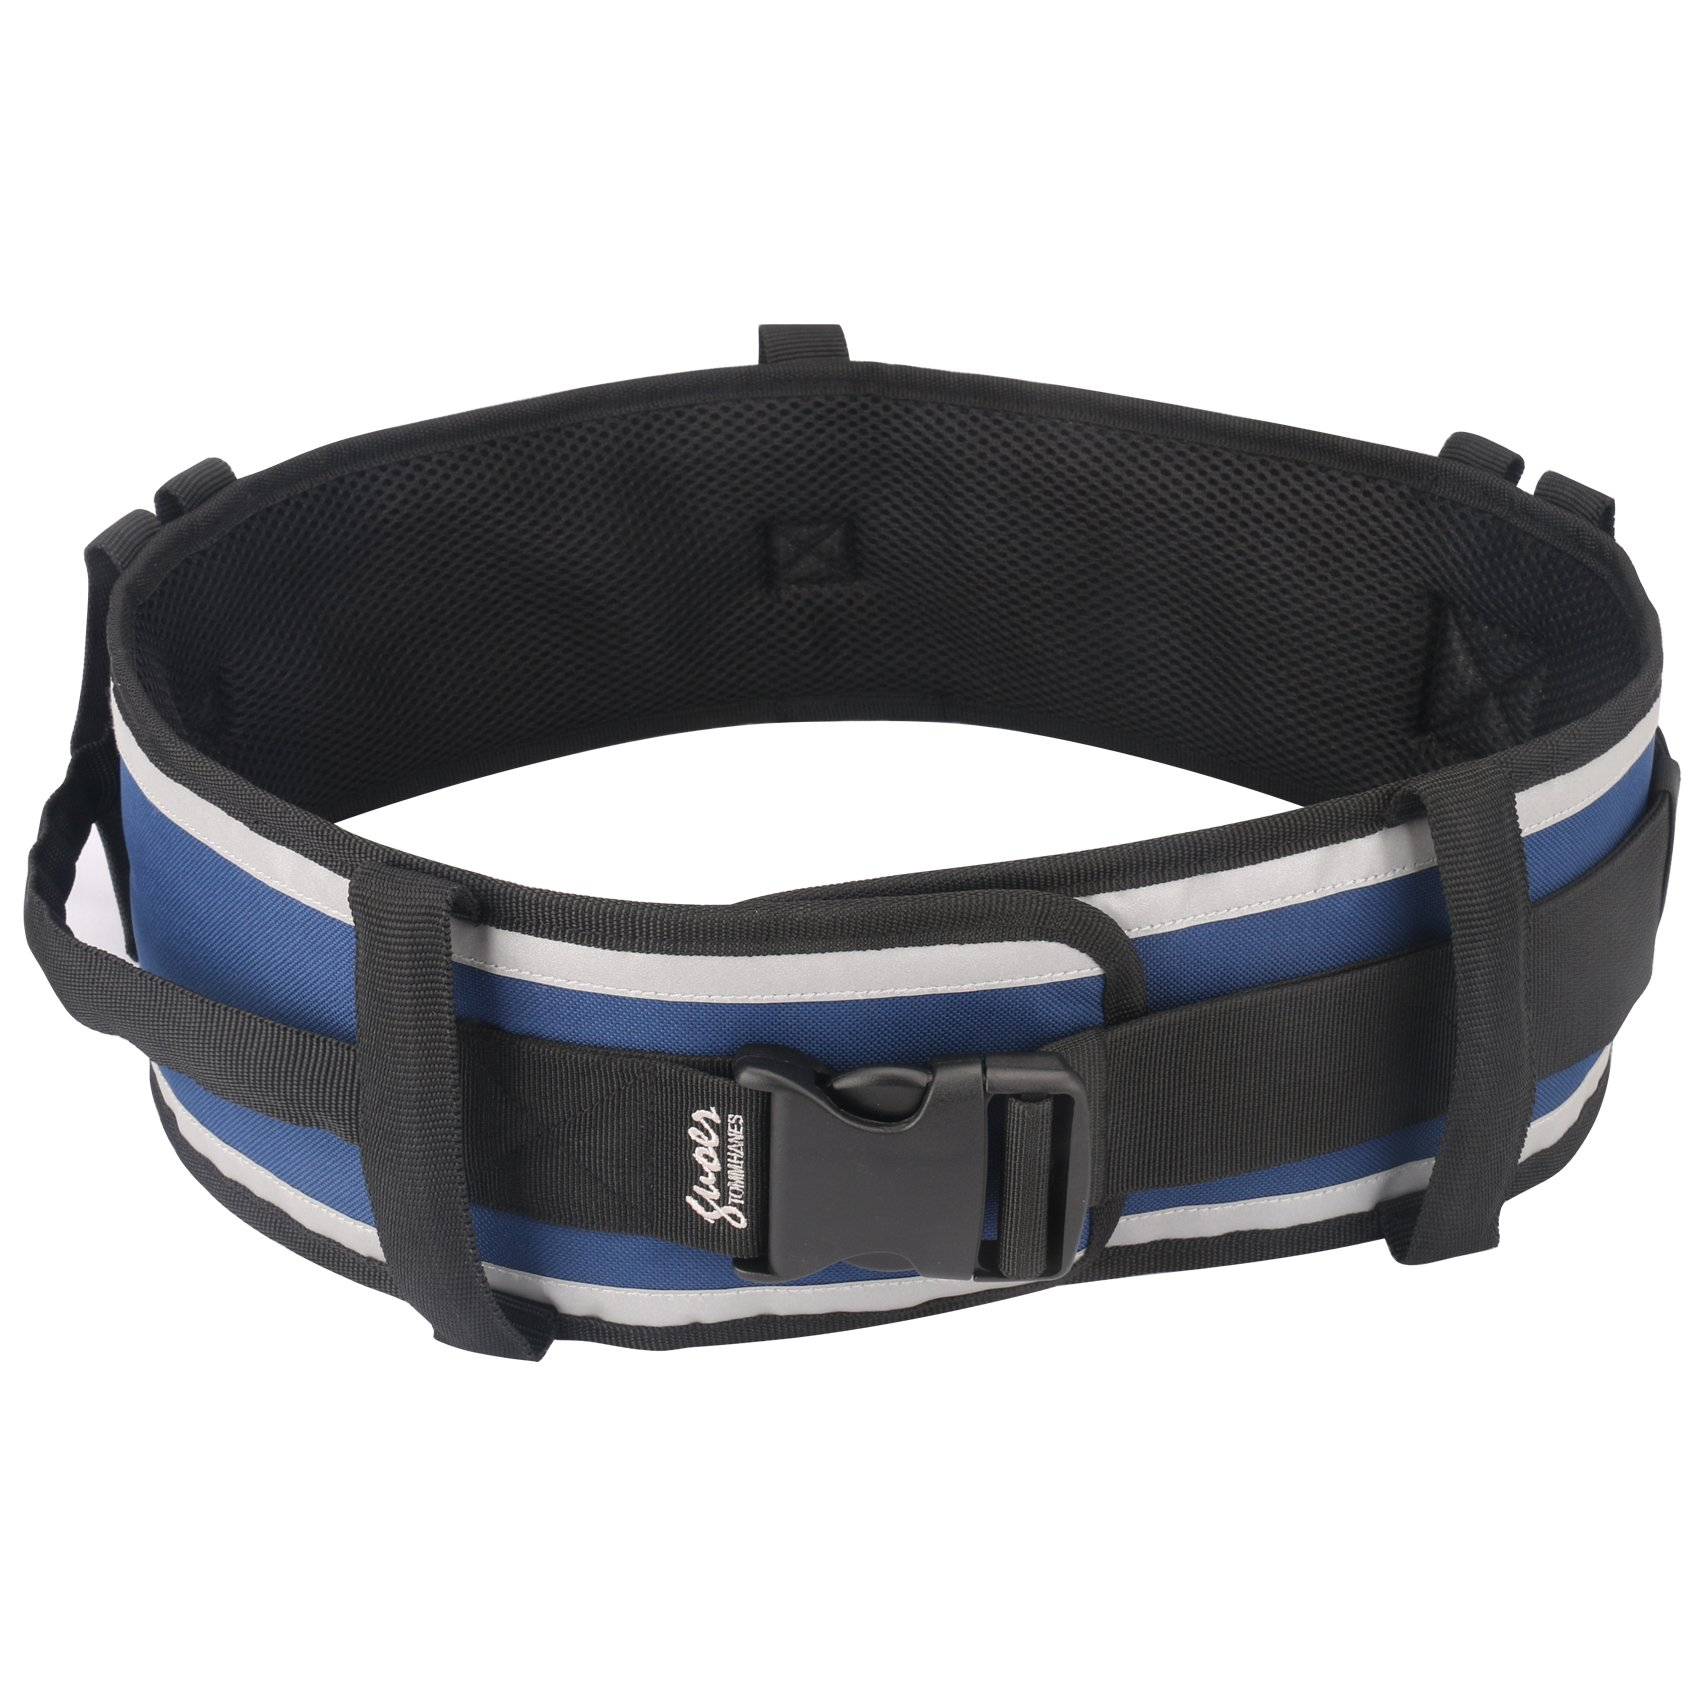 GUOER Tommhanes Transfer Belt Gait Belts Mobility Assistance Belt Multifunctional Nursing Belt One Szie Blue